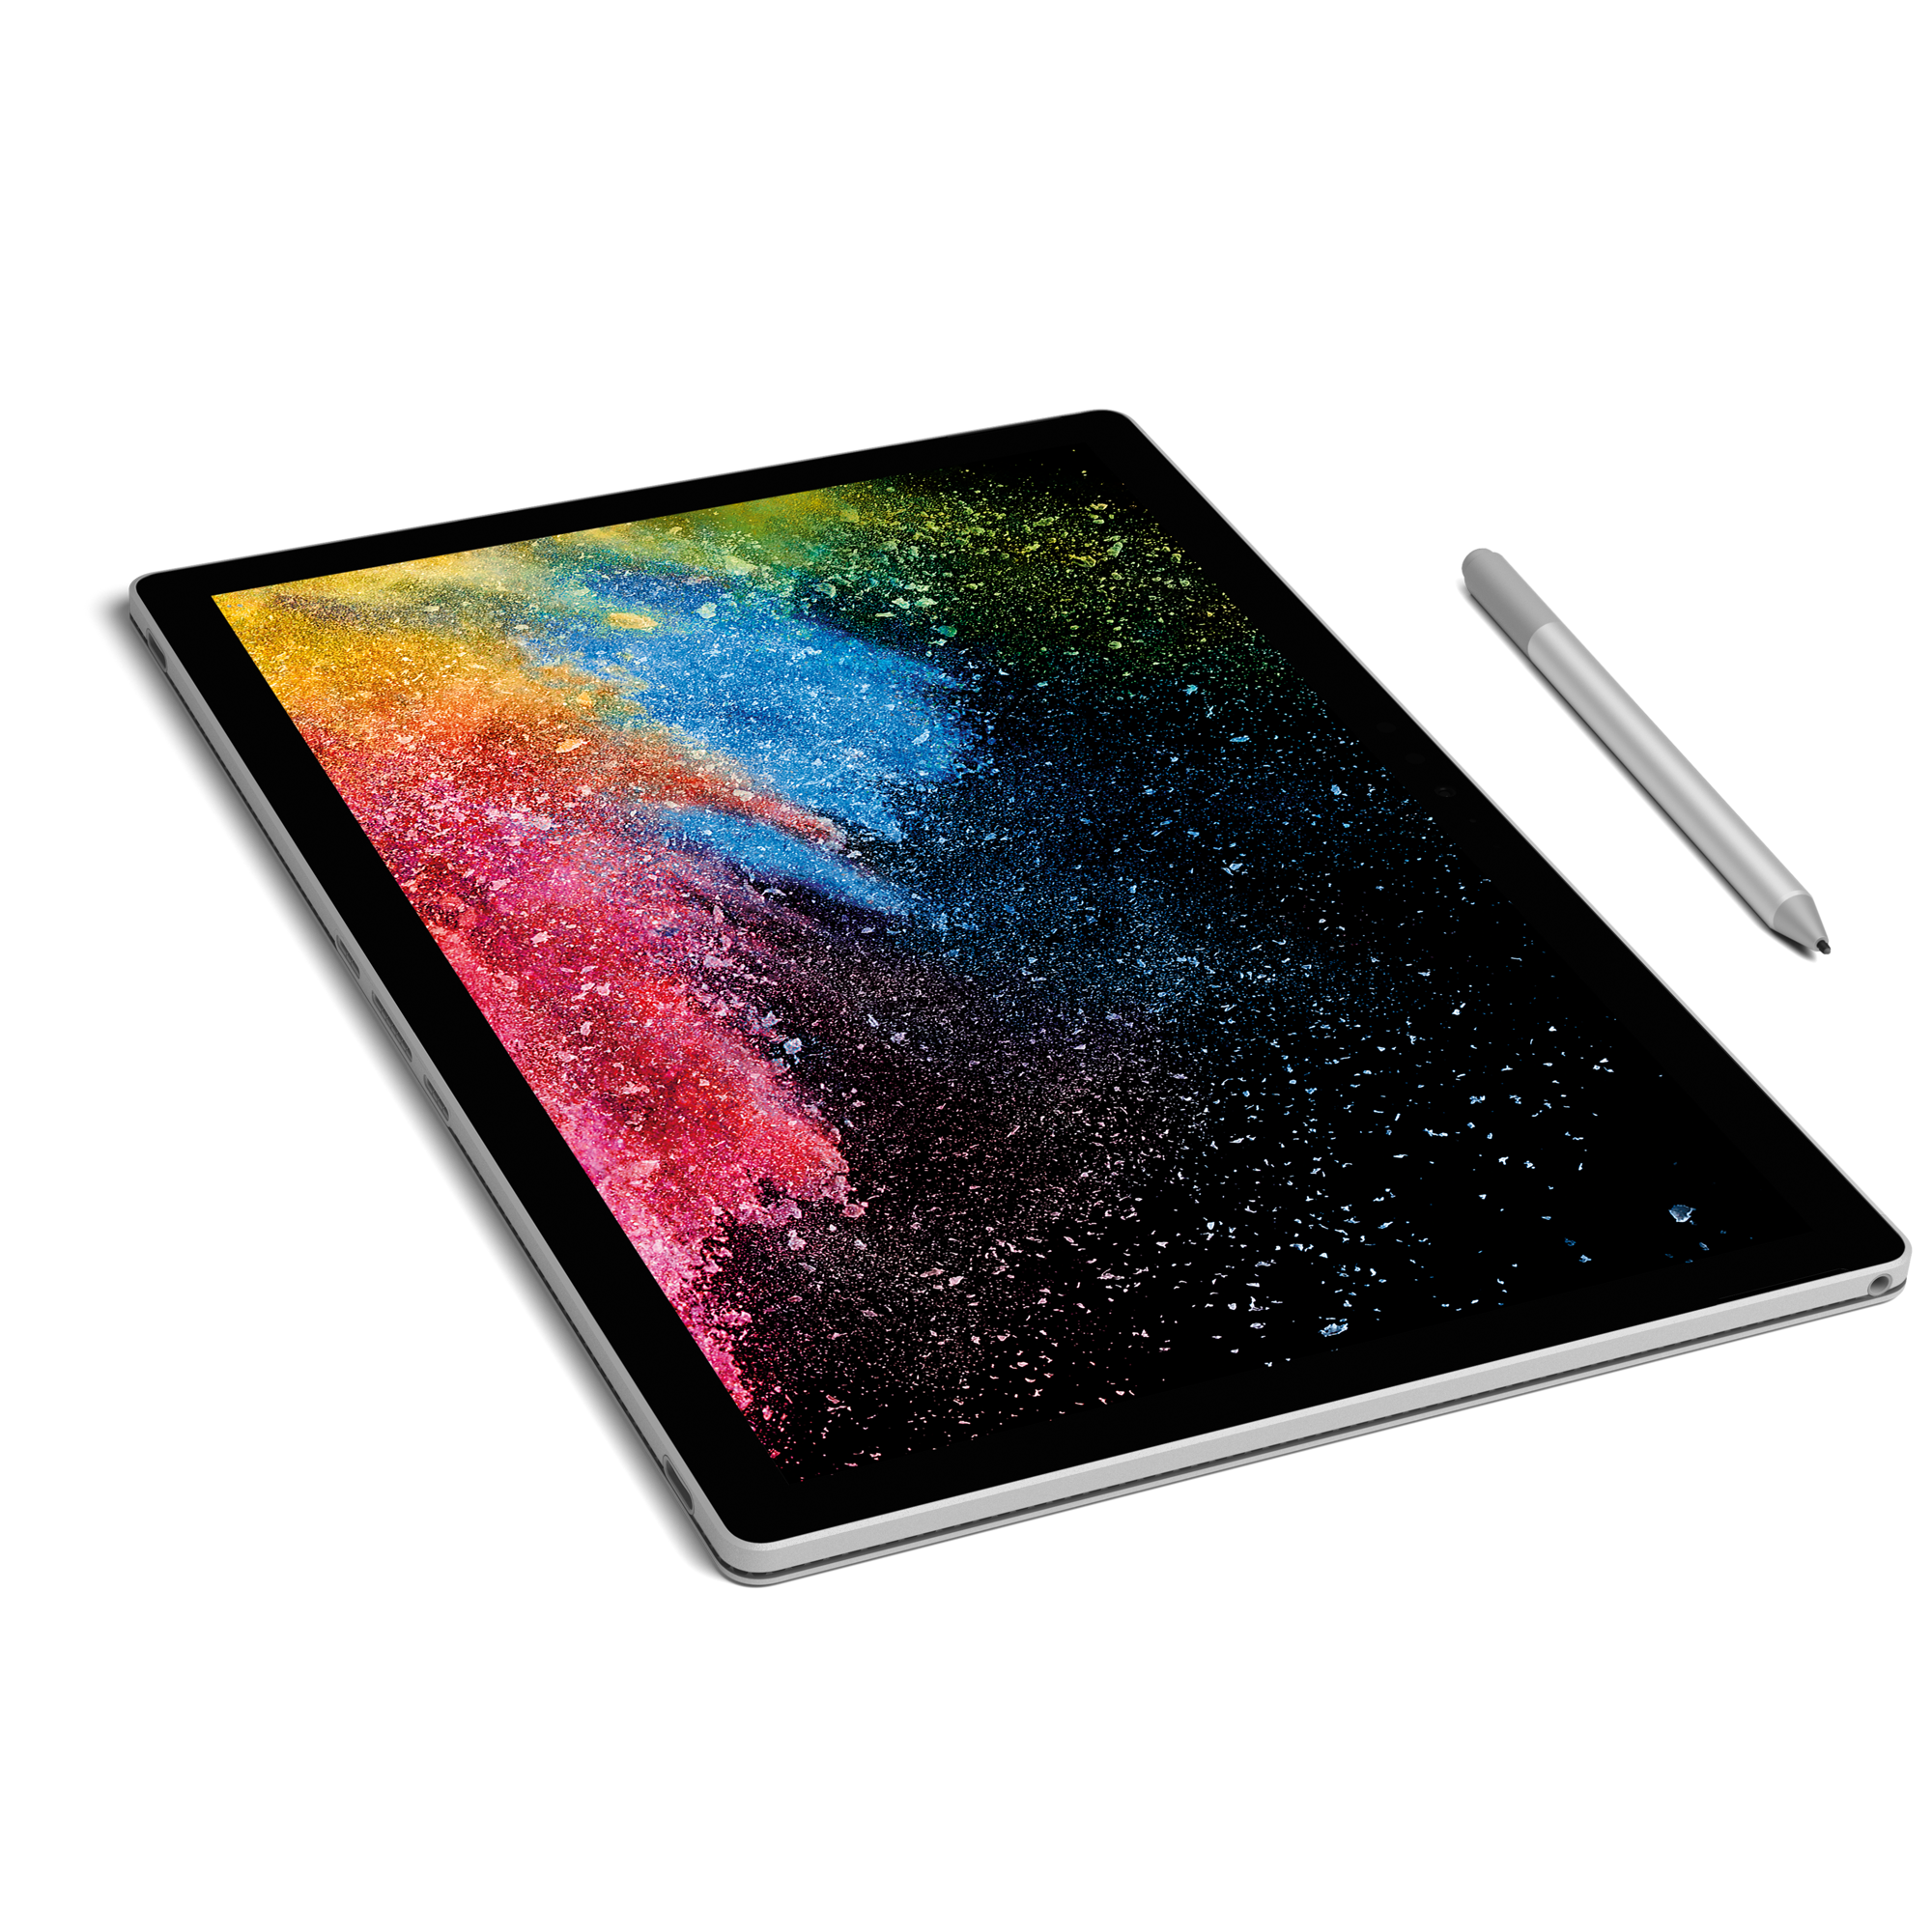 microsoft surface book 2 image 2